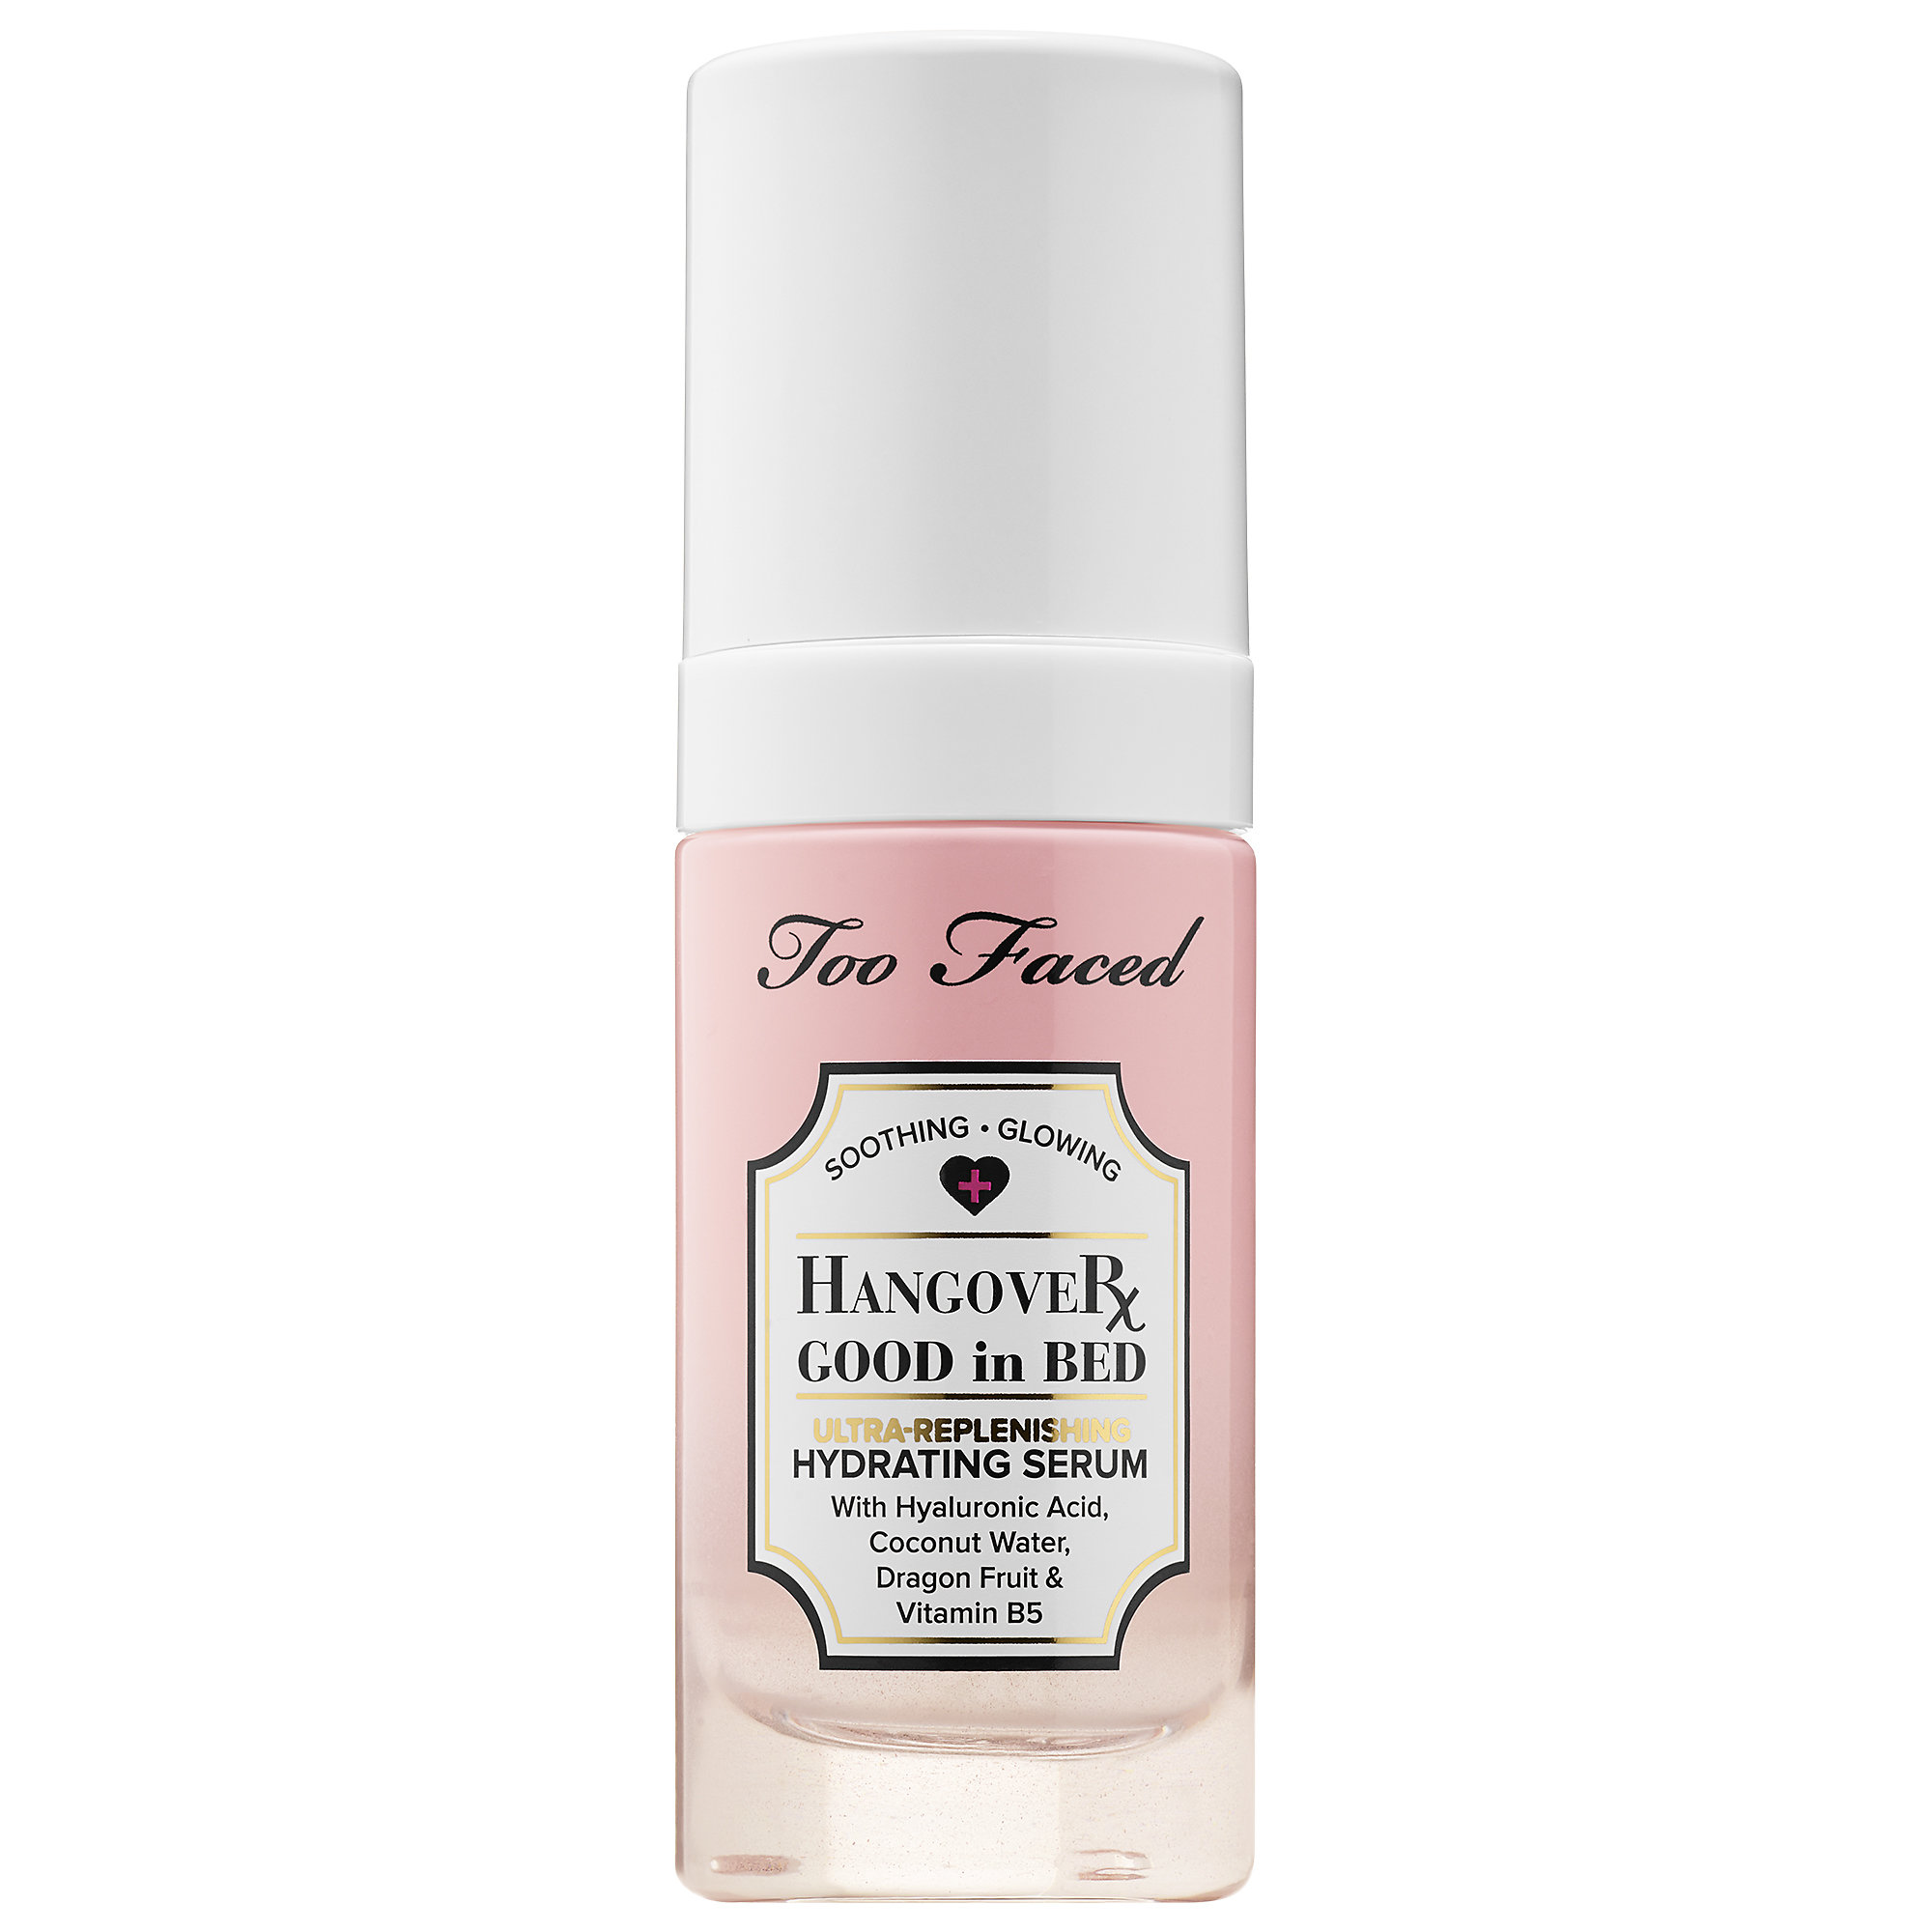 Toofaced - Hangover Good In Bed Ultra-Replenishing Hydrating Serum